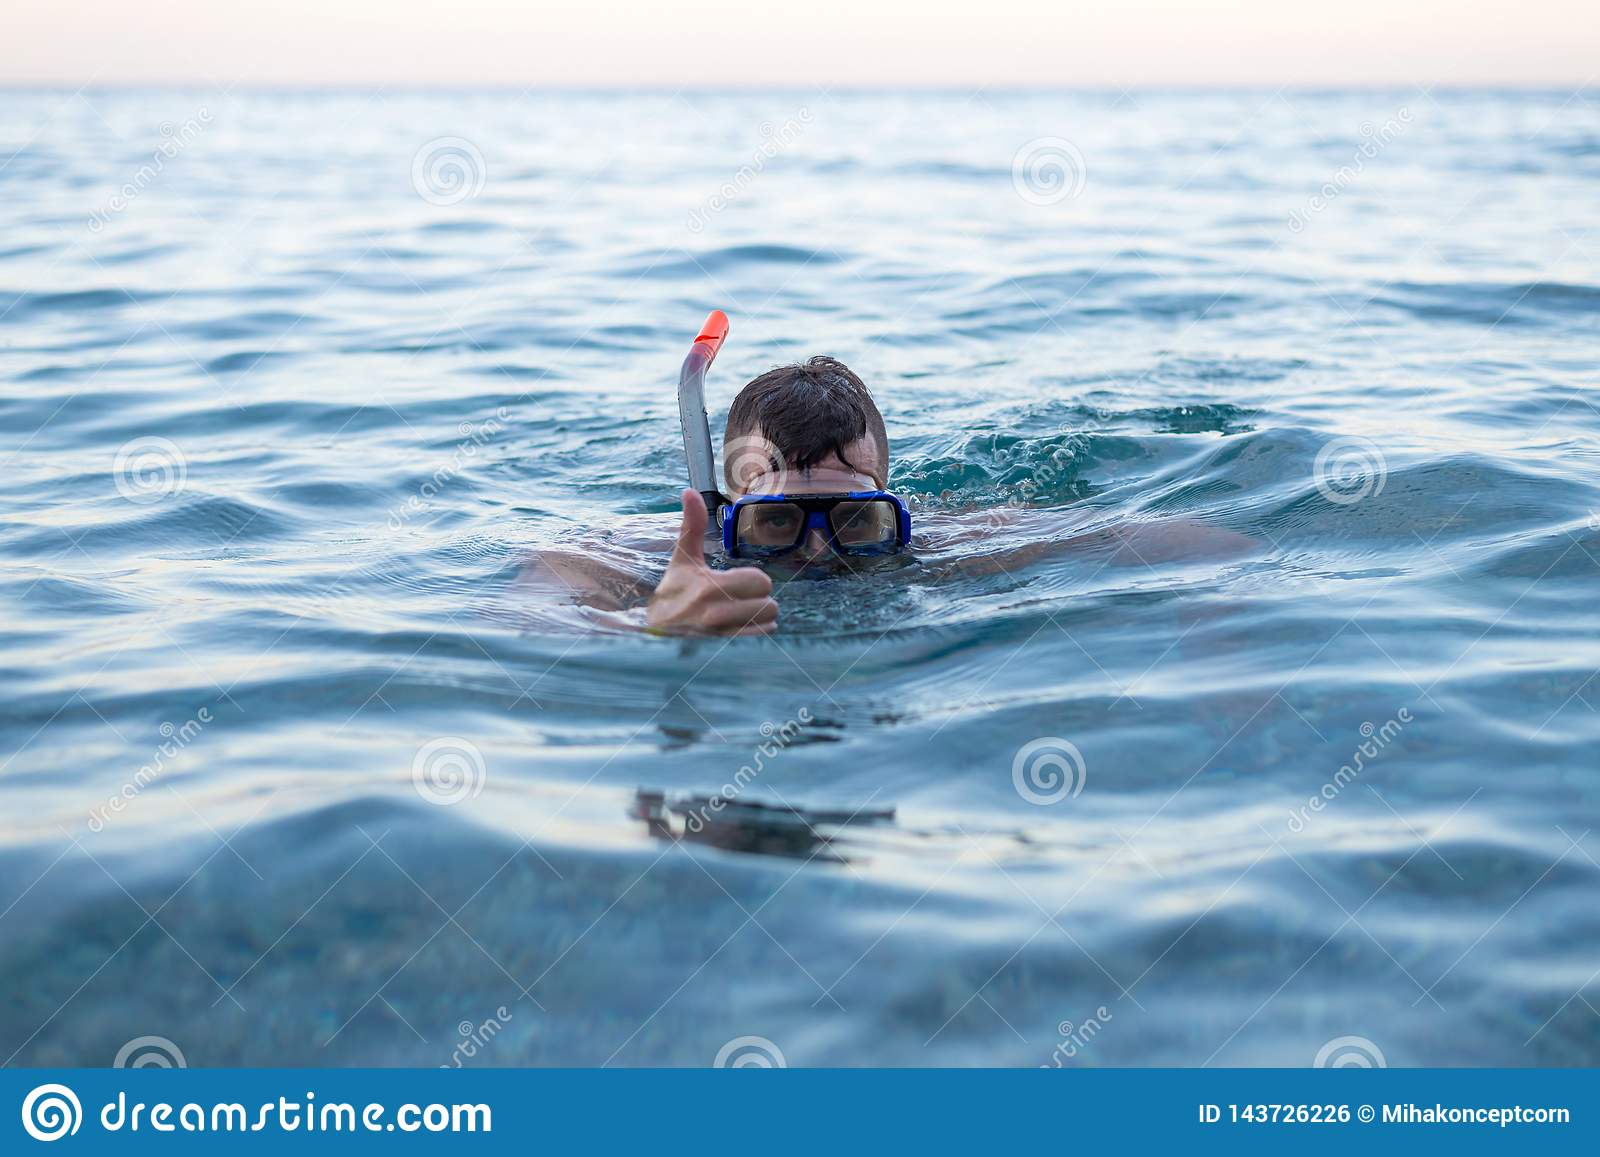 Man swimming in a mask for diving and showing a sign approx